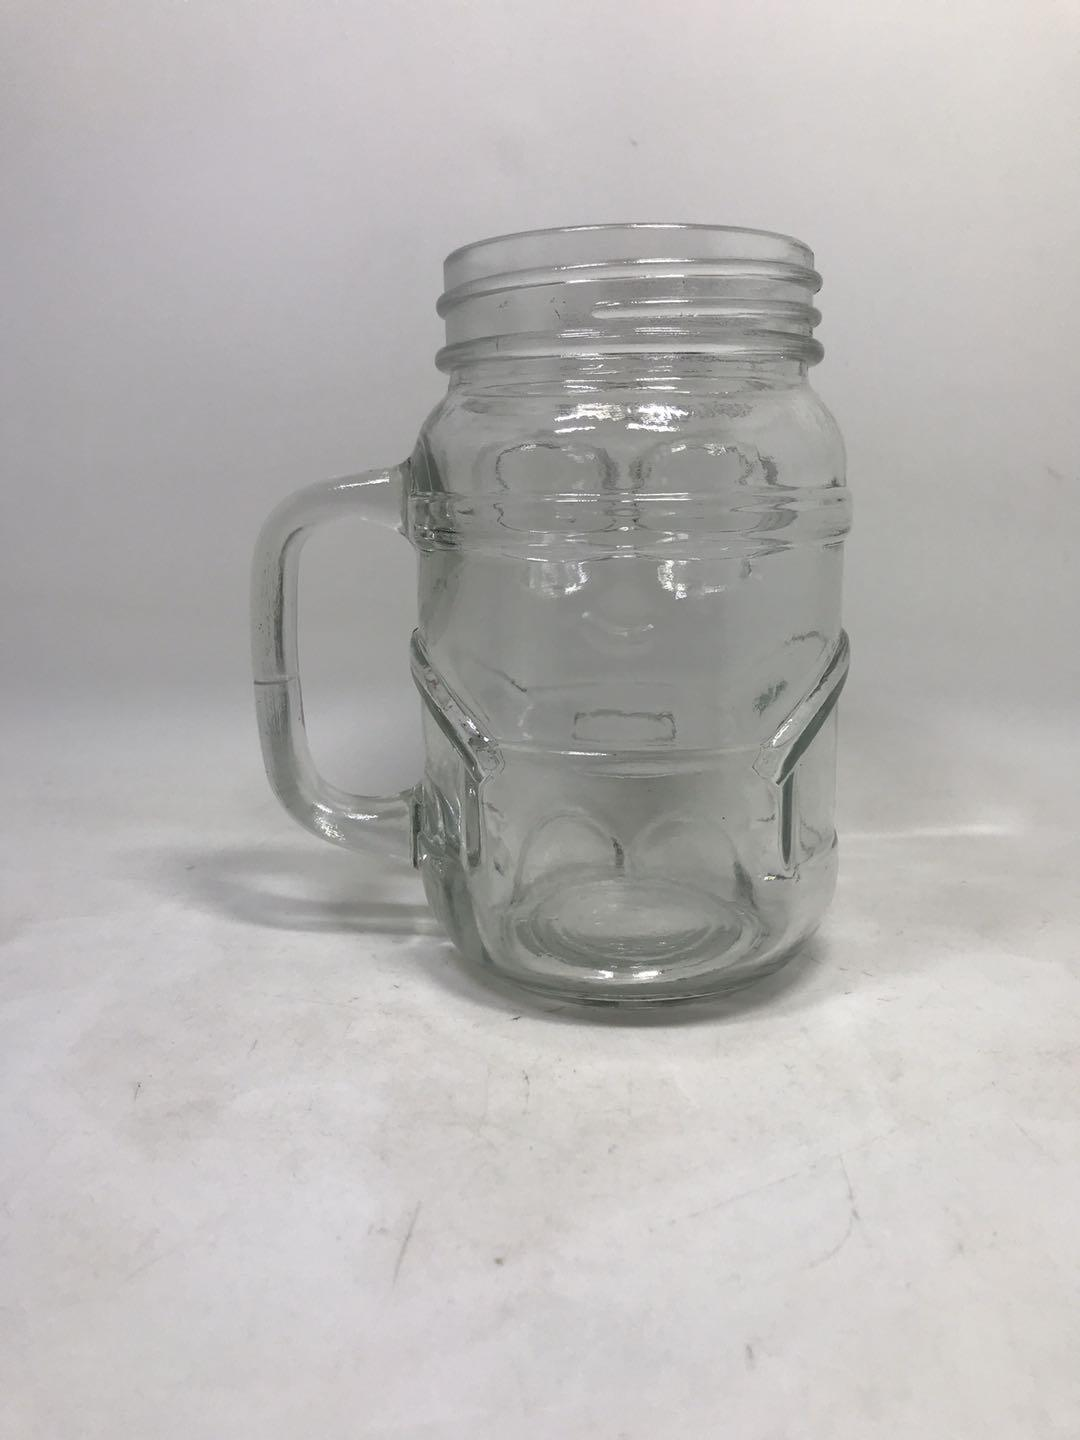 Fancy Shaped Beer Glass Drinking Glass for Liquor/Whisky SDY-X02873 3